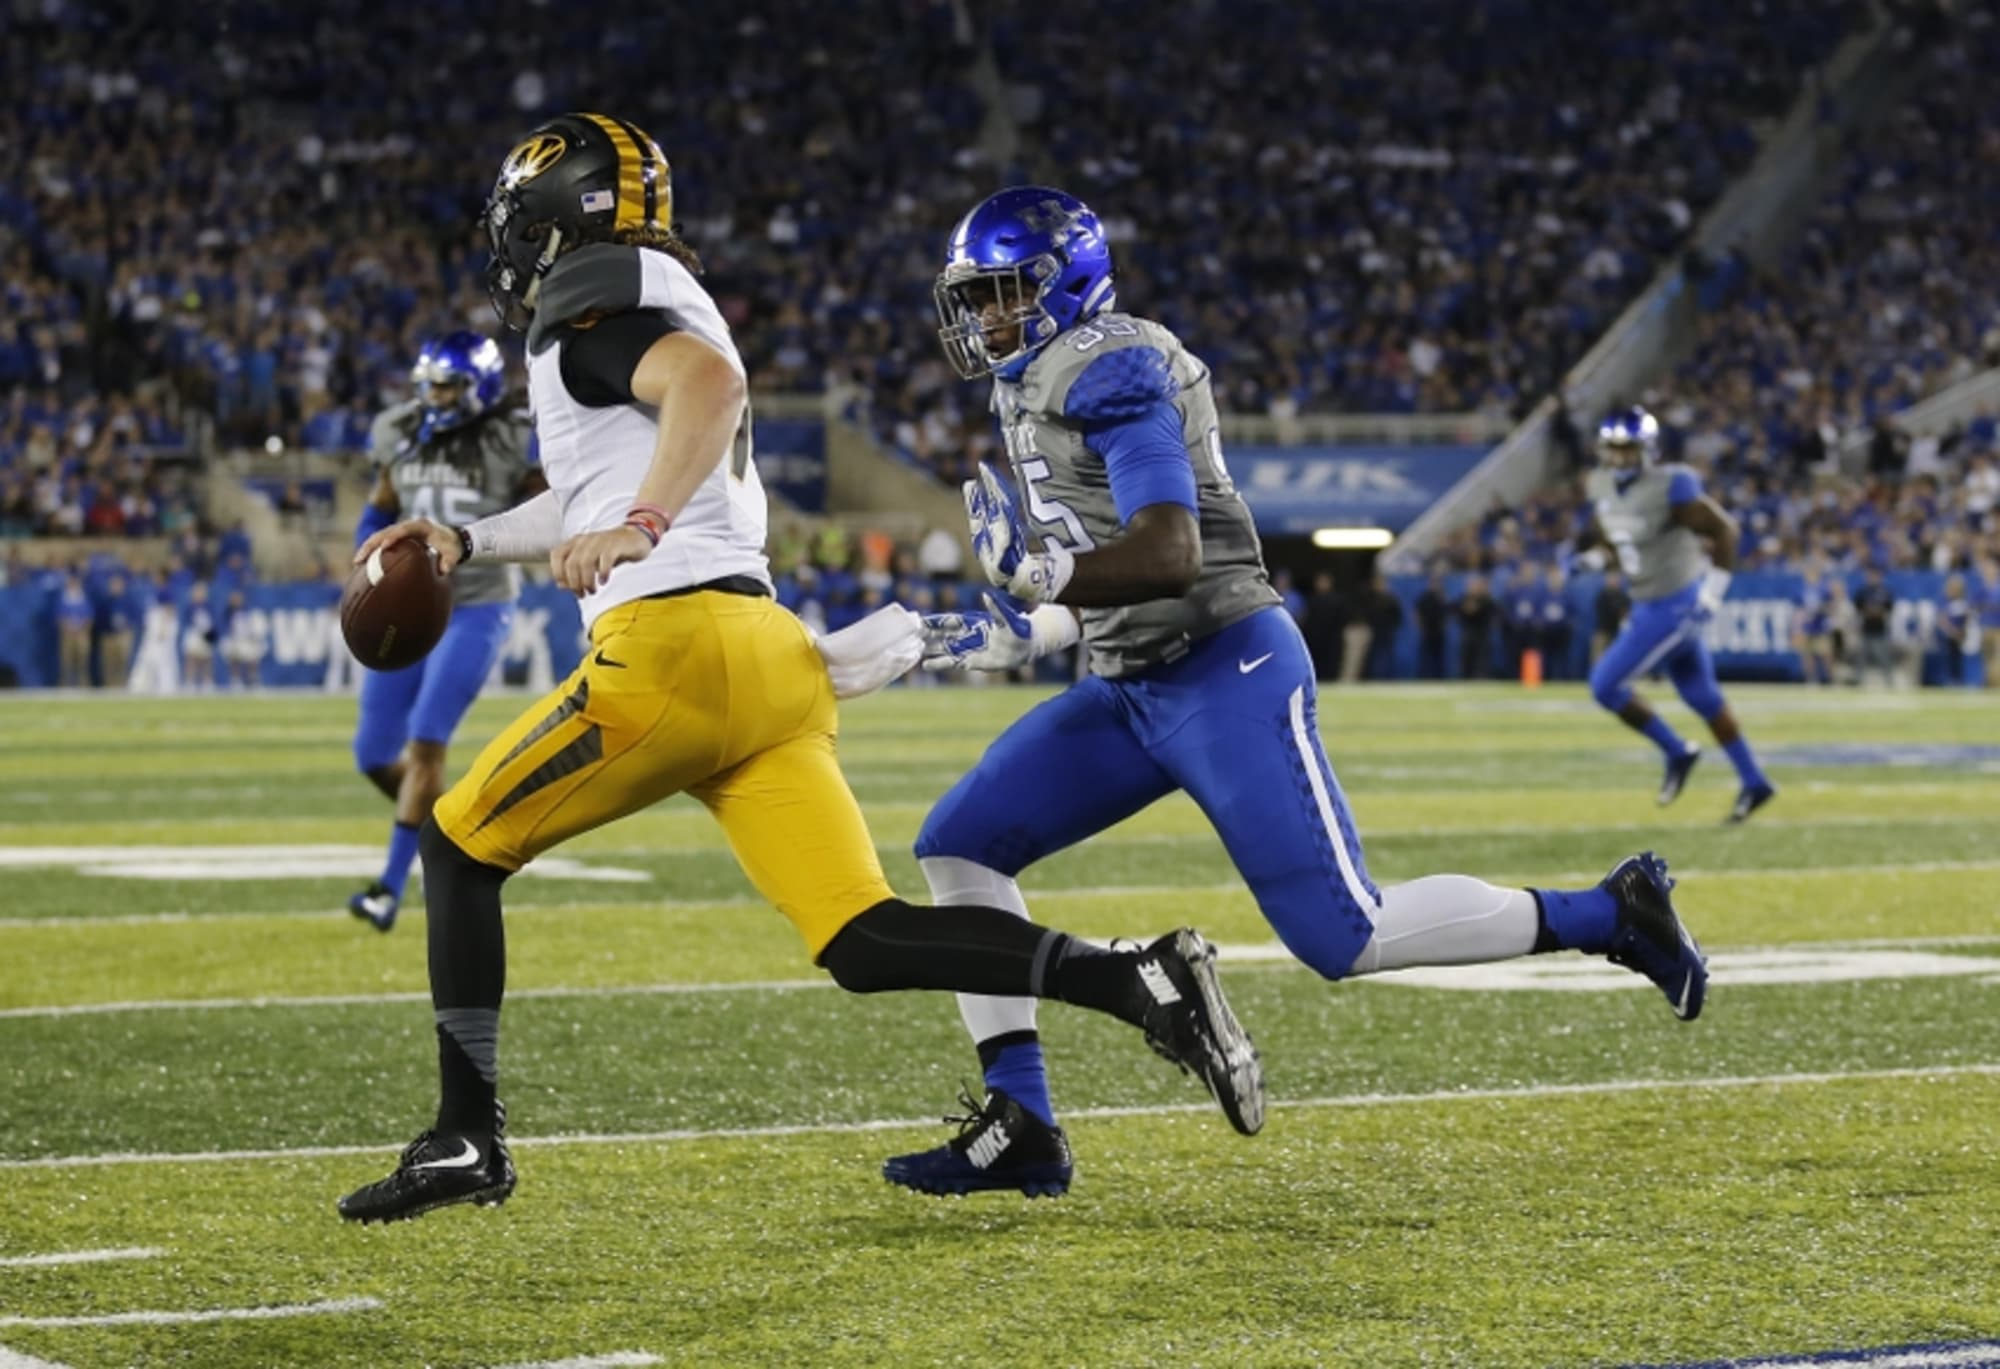 Kentucky Football: The Pressure Is On The Front Seven